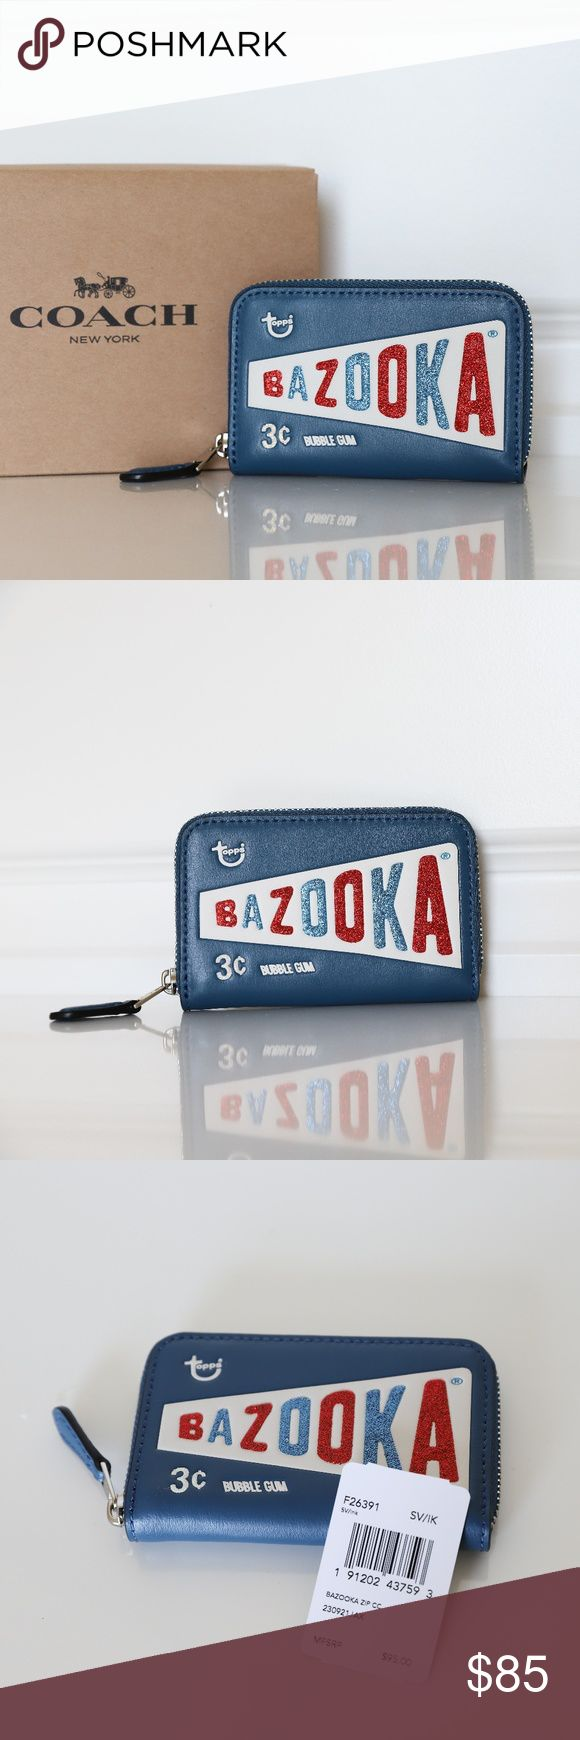 "Coach F26391  BAZOOKA Gum Zip Coin Case Wallet NWT Coach F26391 Limited Edition BAZOOKA Zip Coin Case Wallet   Style: F26395 Color:Ink/Silver  Details: Smooth Leather Credit card pockets Zip closure, fabric lining Zip coin pocket Measures approximately 4.5""L x 3""H x .75""D  IN SMOKE AND PET FREE HOME!! ALL ITEMS ARE GUARANTEED 100% AUTHENTIC and BRAND NEW ! Coach Bags Wallets"